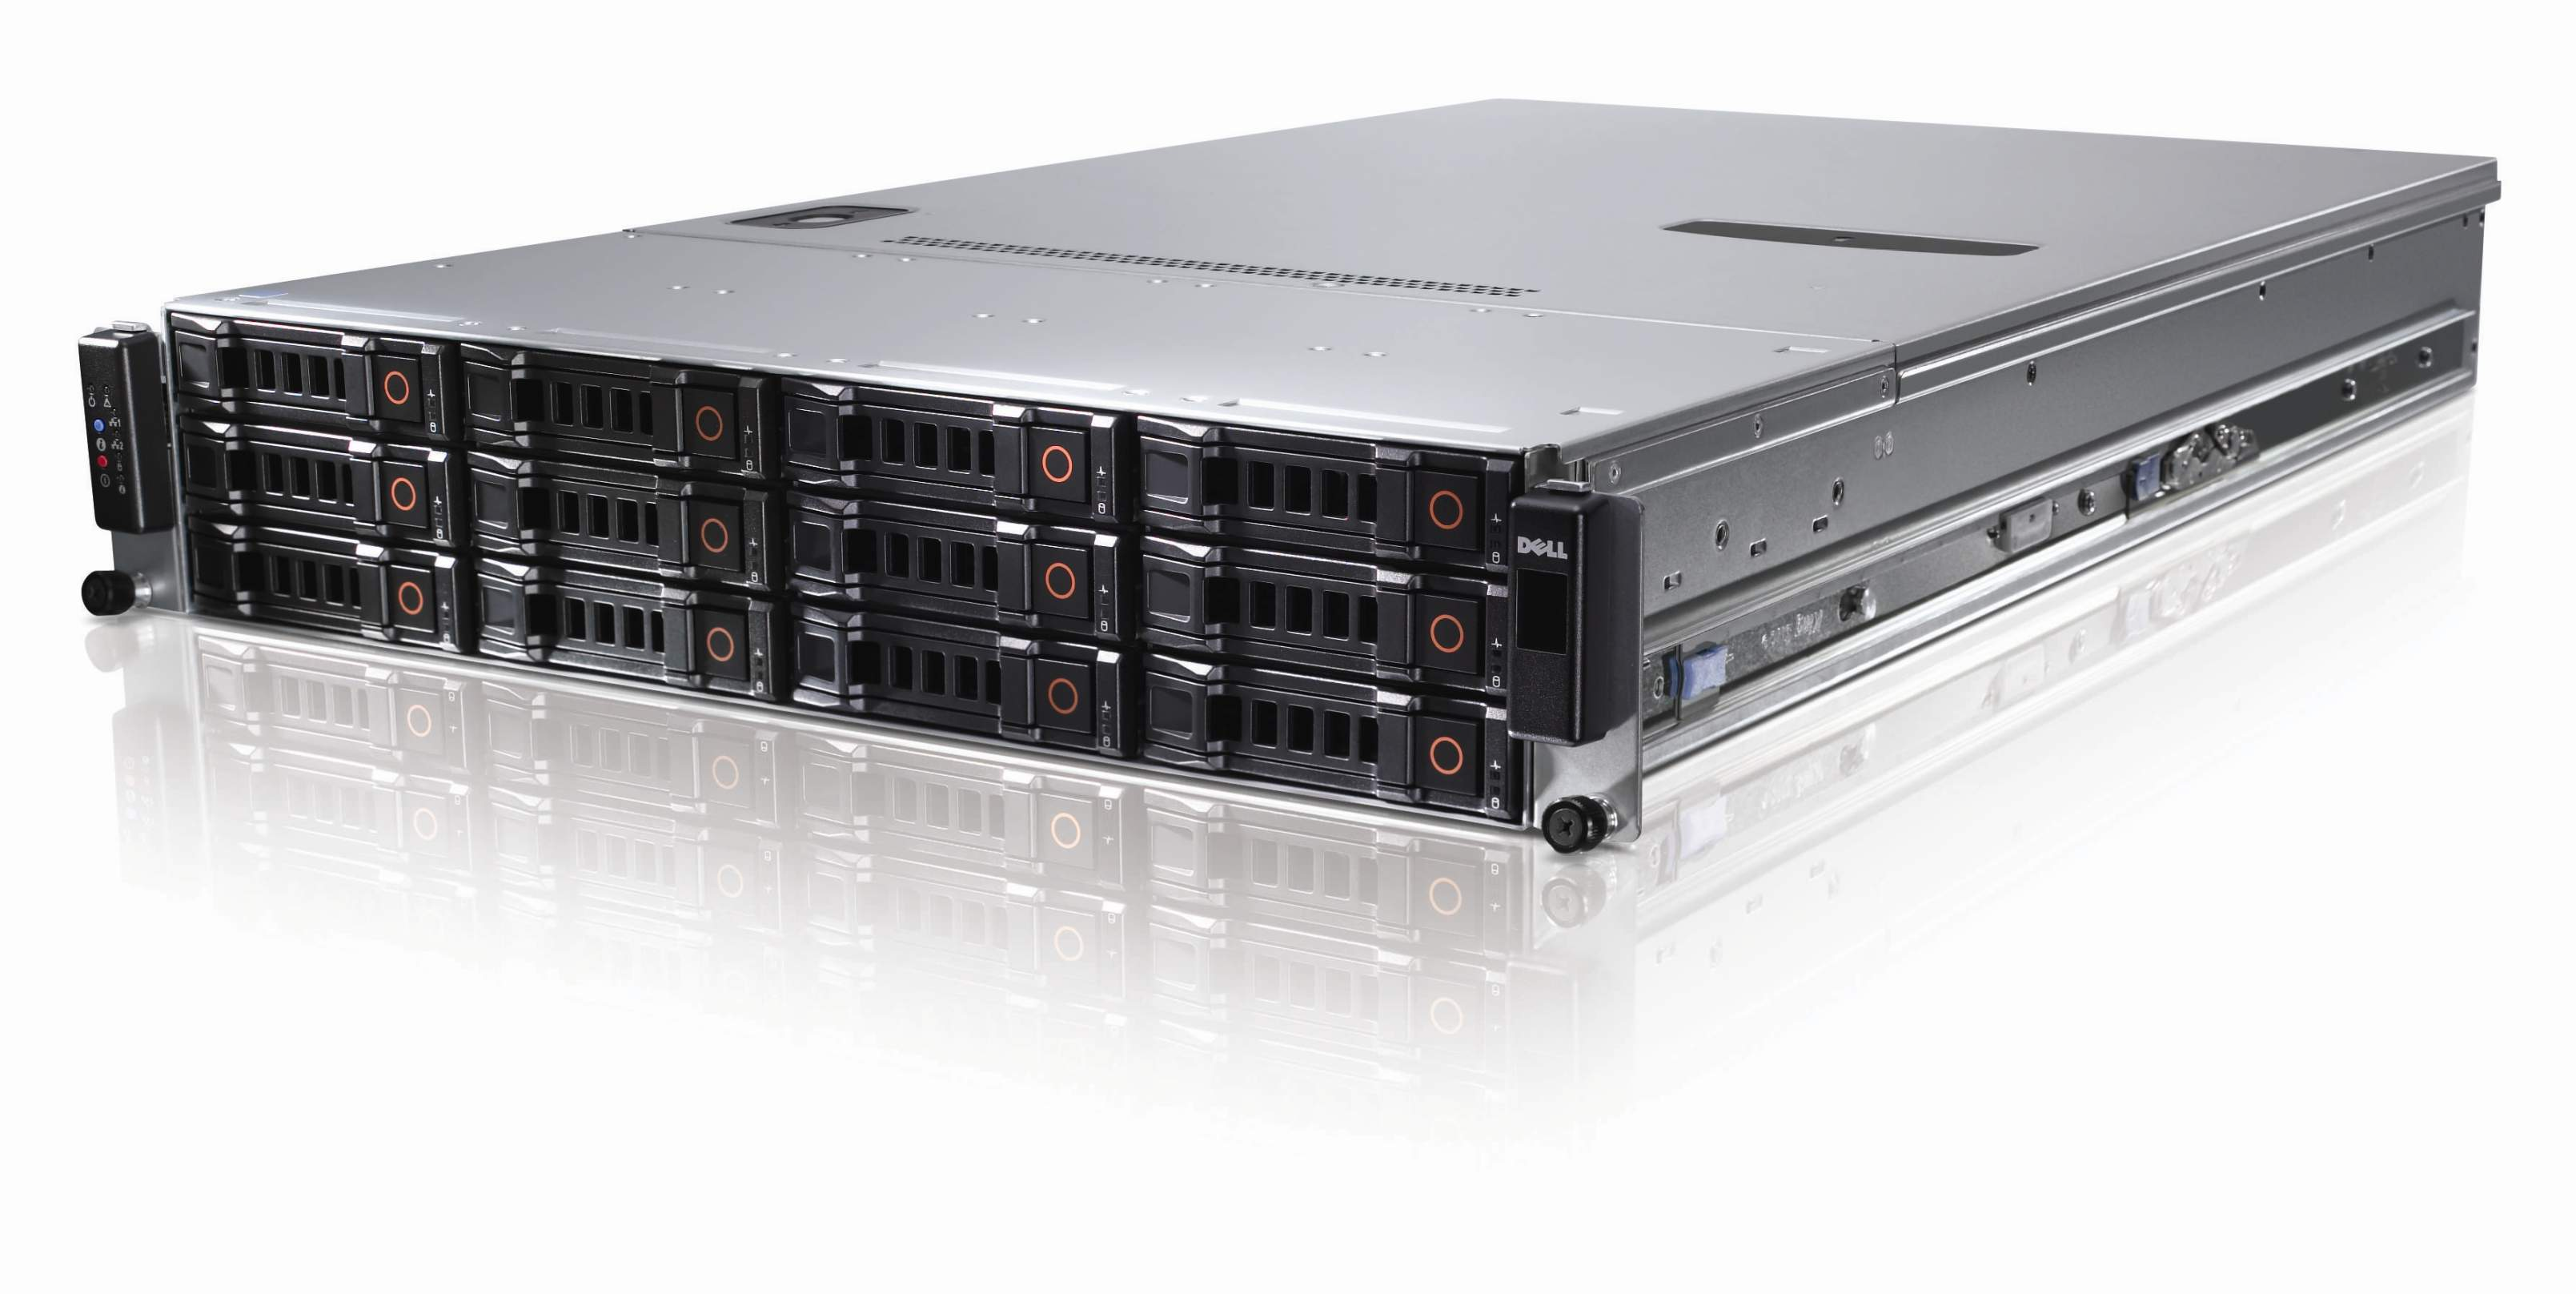 MÁY CHỦ DELL POWEREDGE C2100 XEON 6-CORES X5660